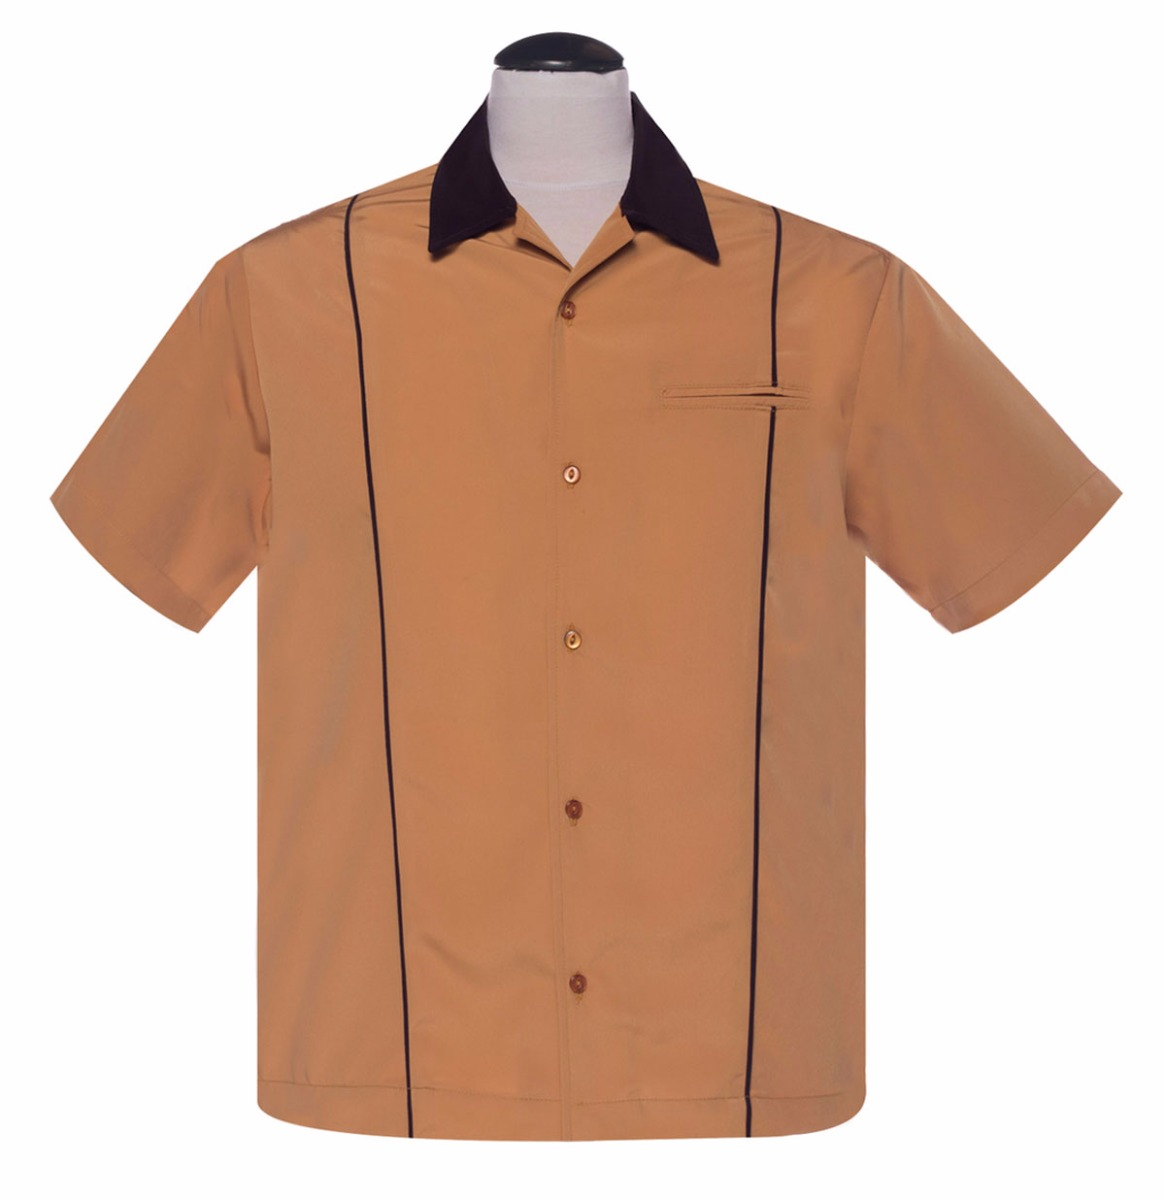 Classic Shirt The Shuckster Mustard